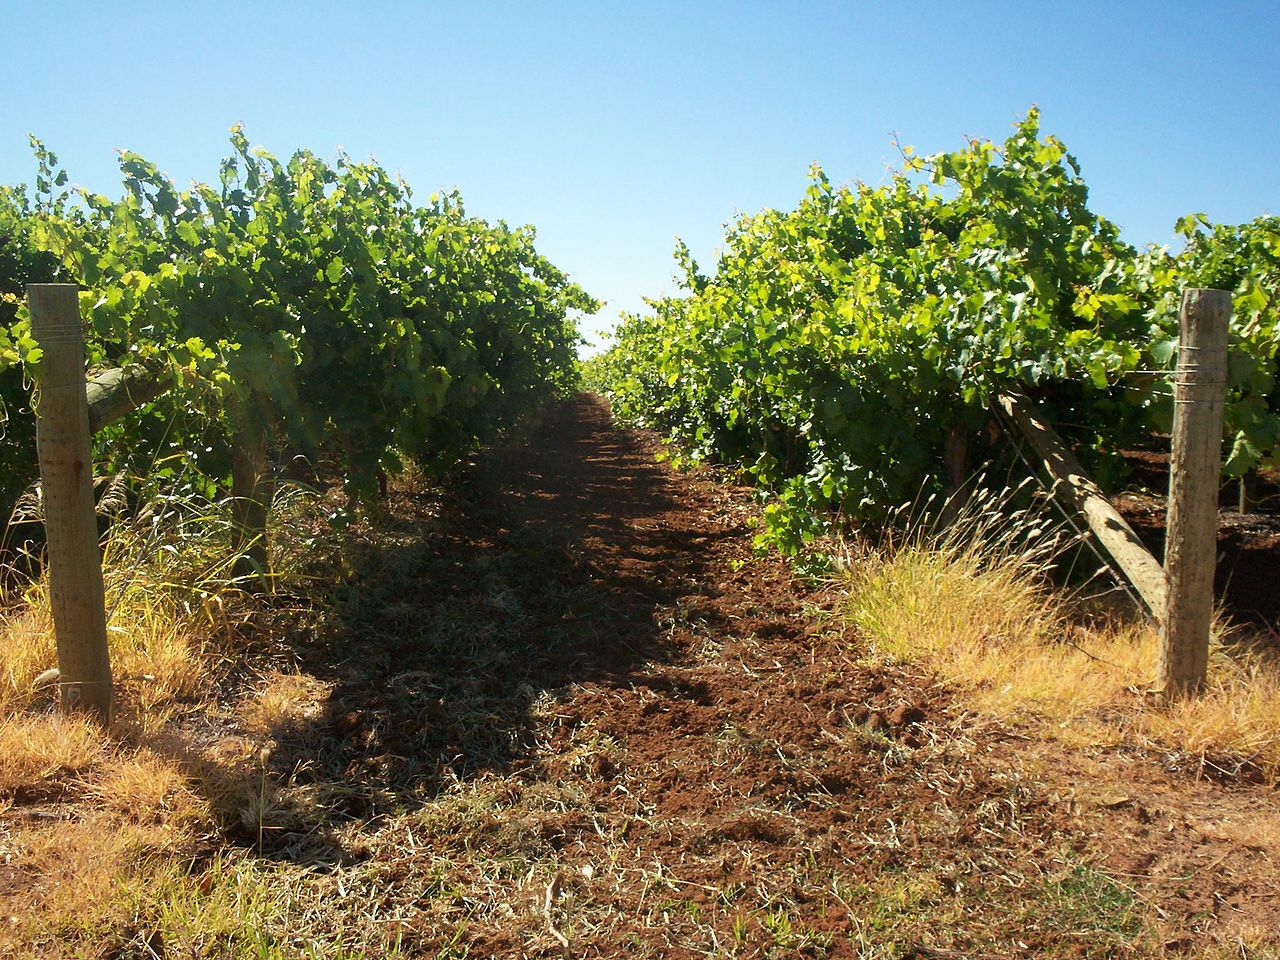 Mildura as a source of Australia's dried vine fruits